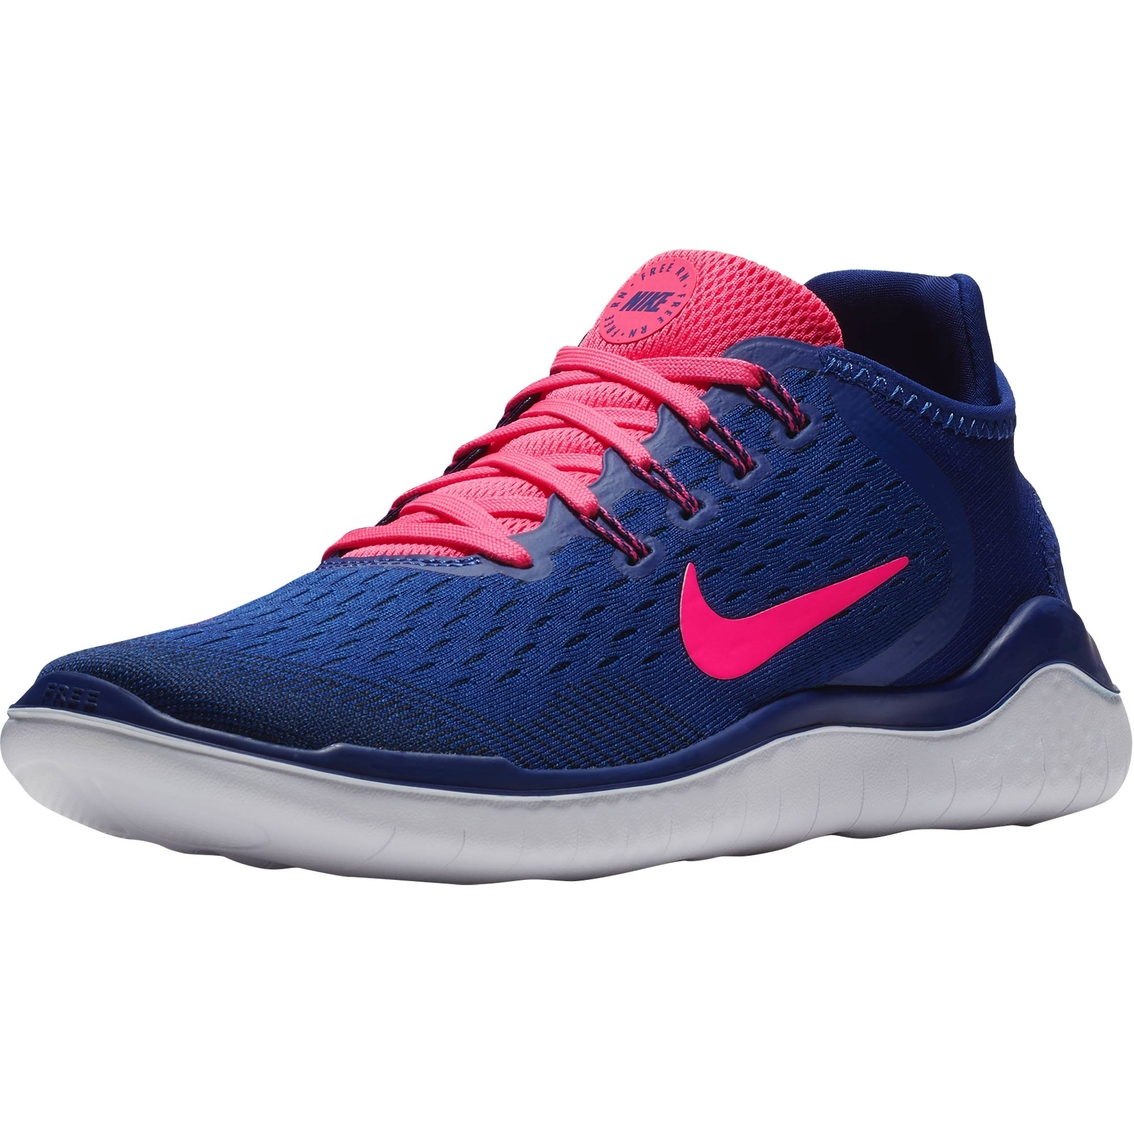 wholesale dealer cc1a5 482a9 Nike Women's Free Rn 2018 Running Shoes   Running   Back To ...